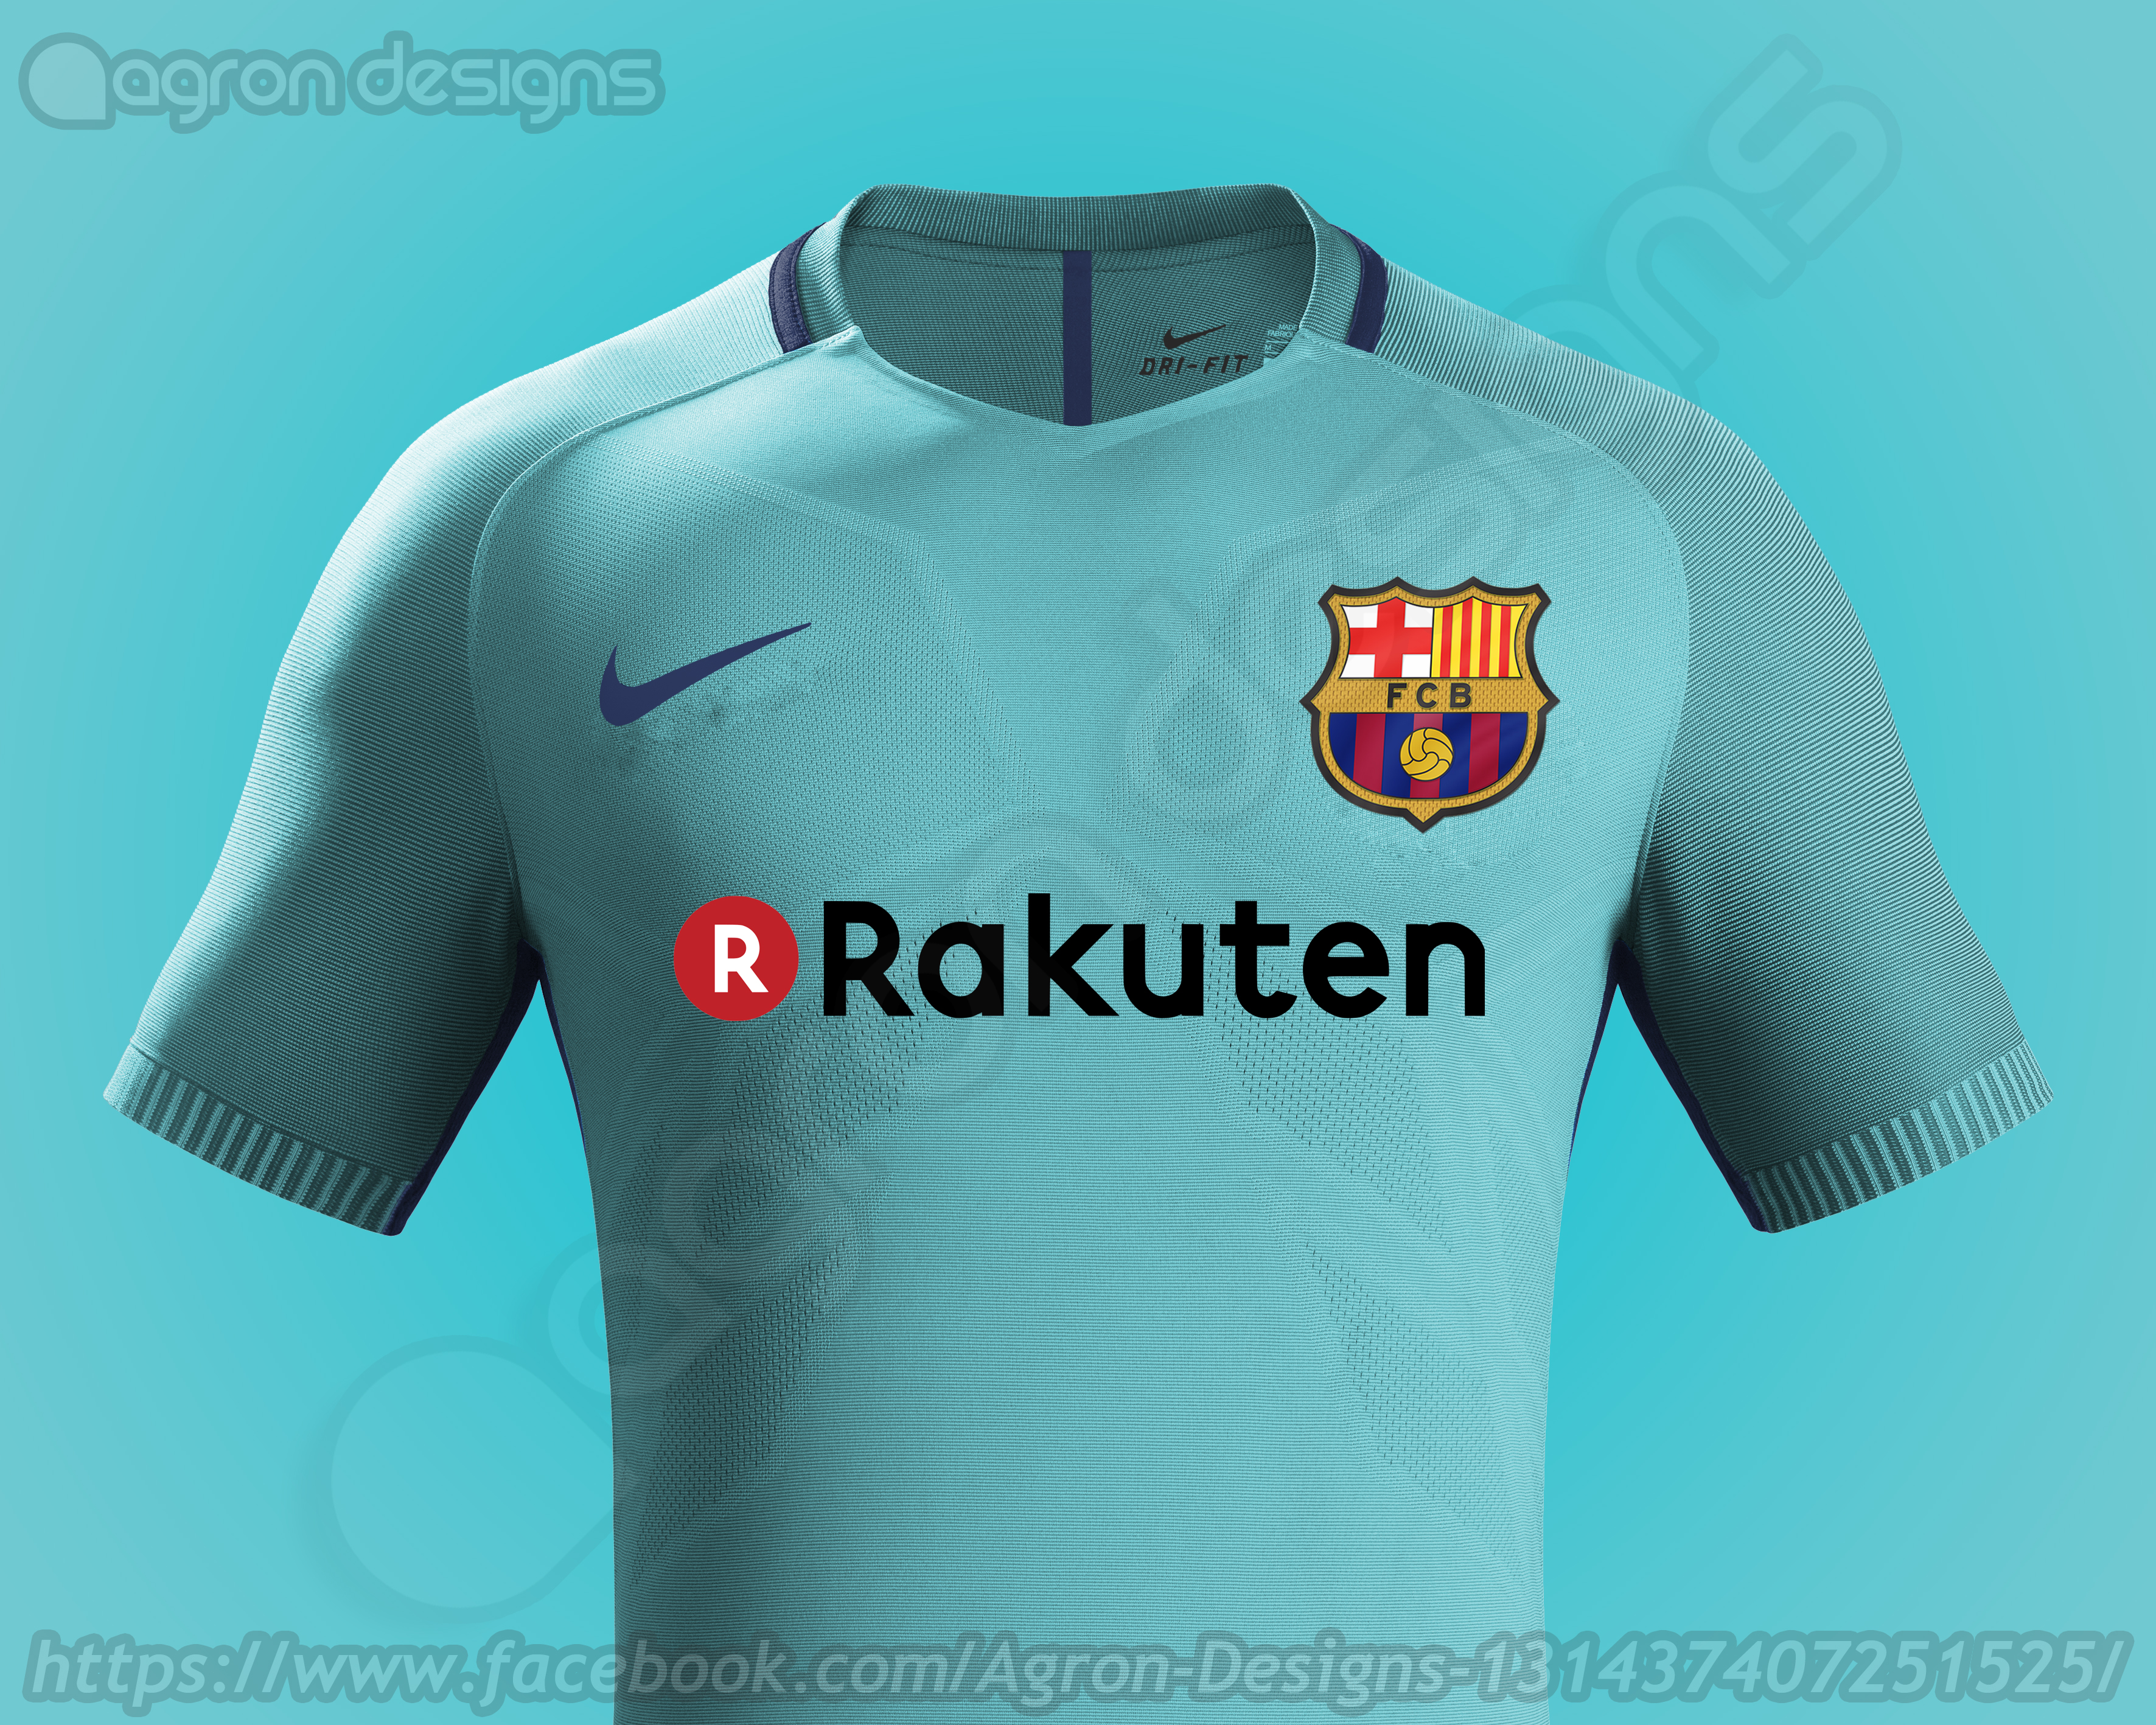 reputable site 00188 bf814 Nike Fc Barcelona 2017-18 Away Kit Based On Leaked Images